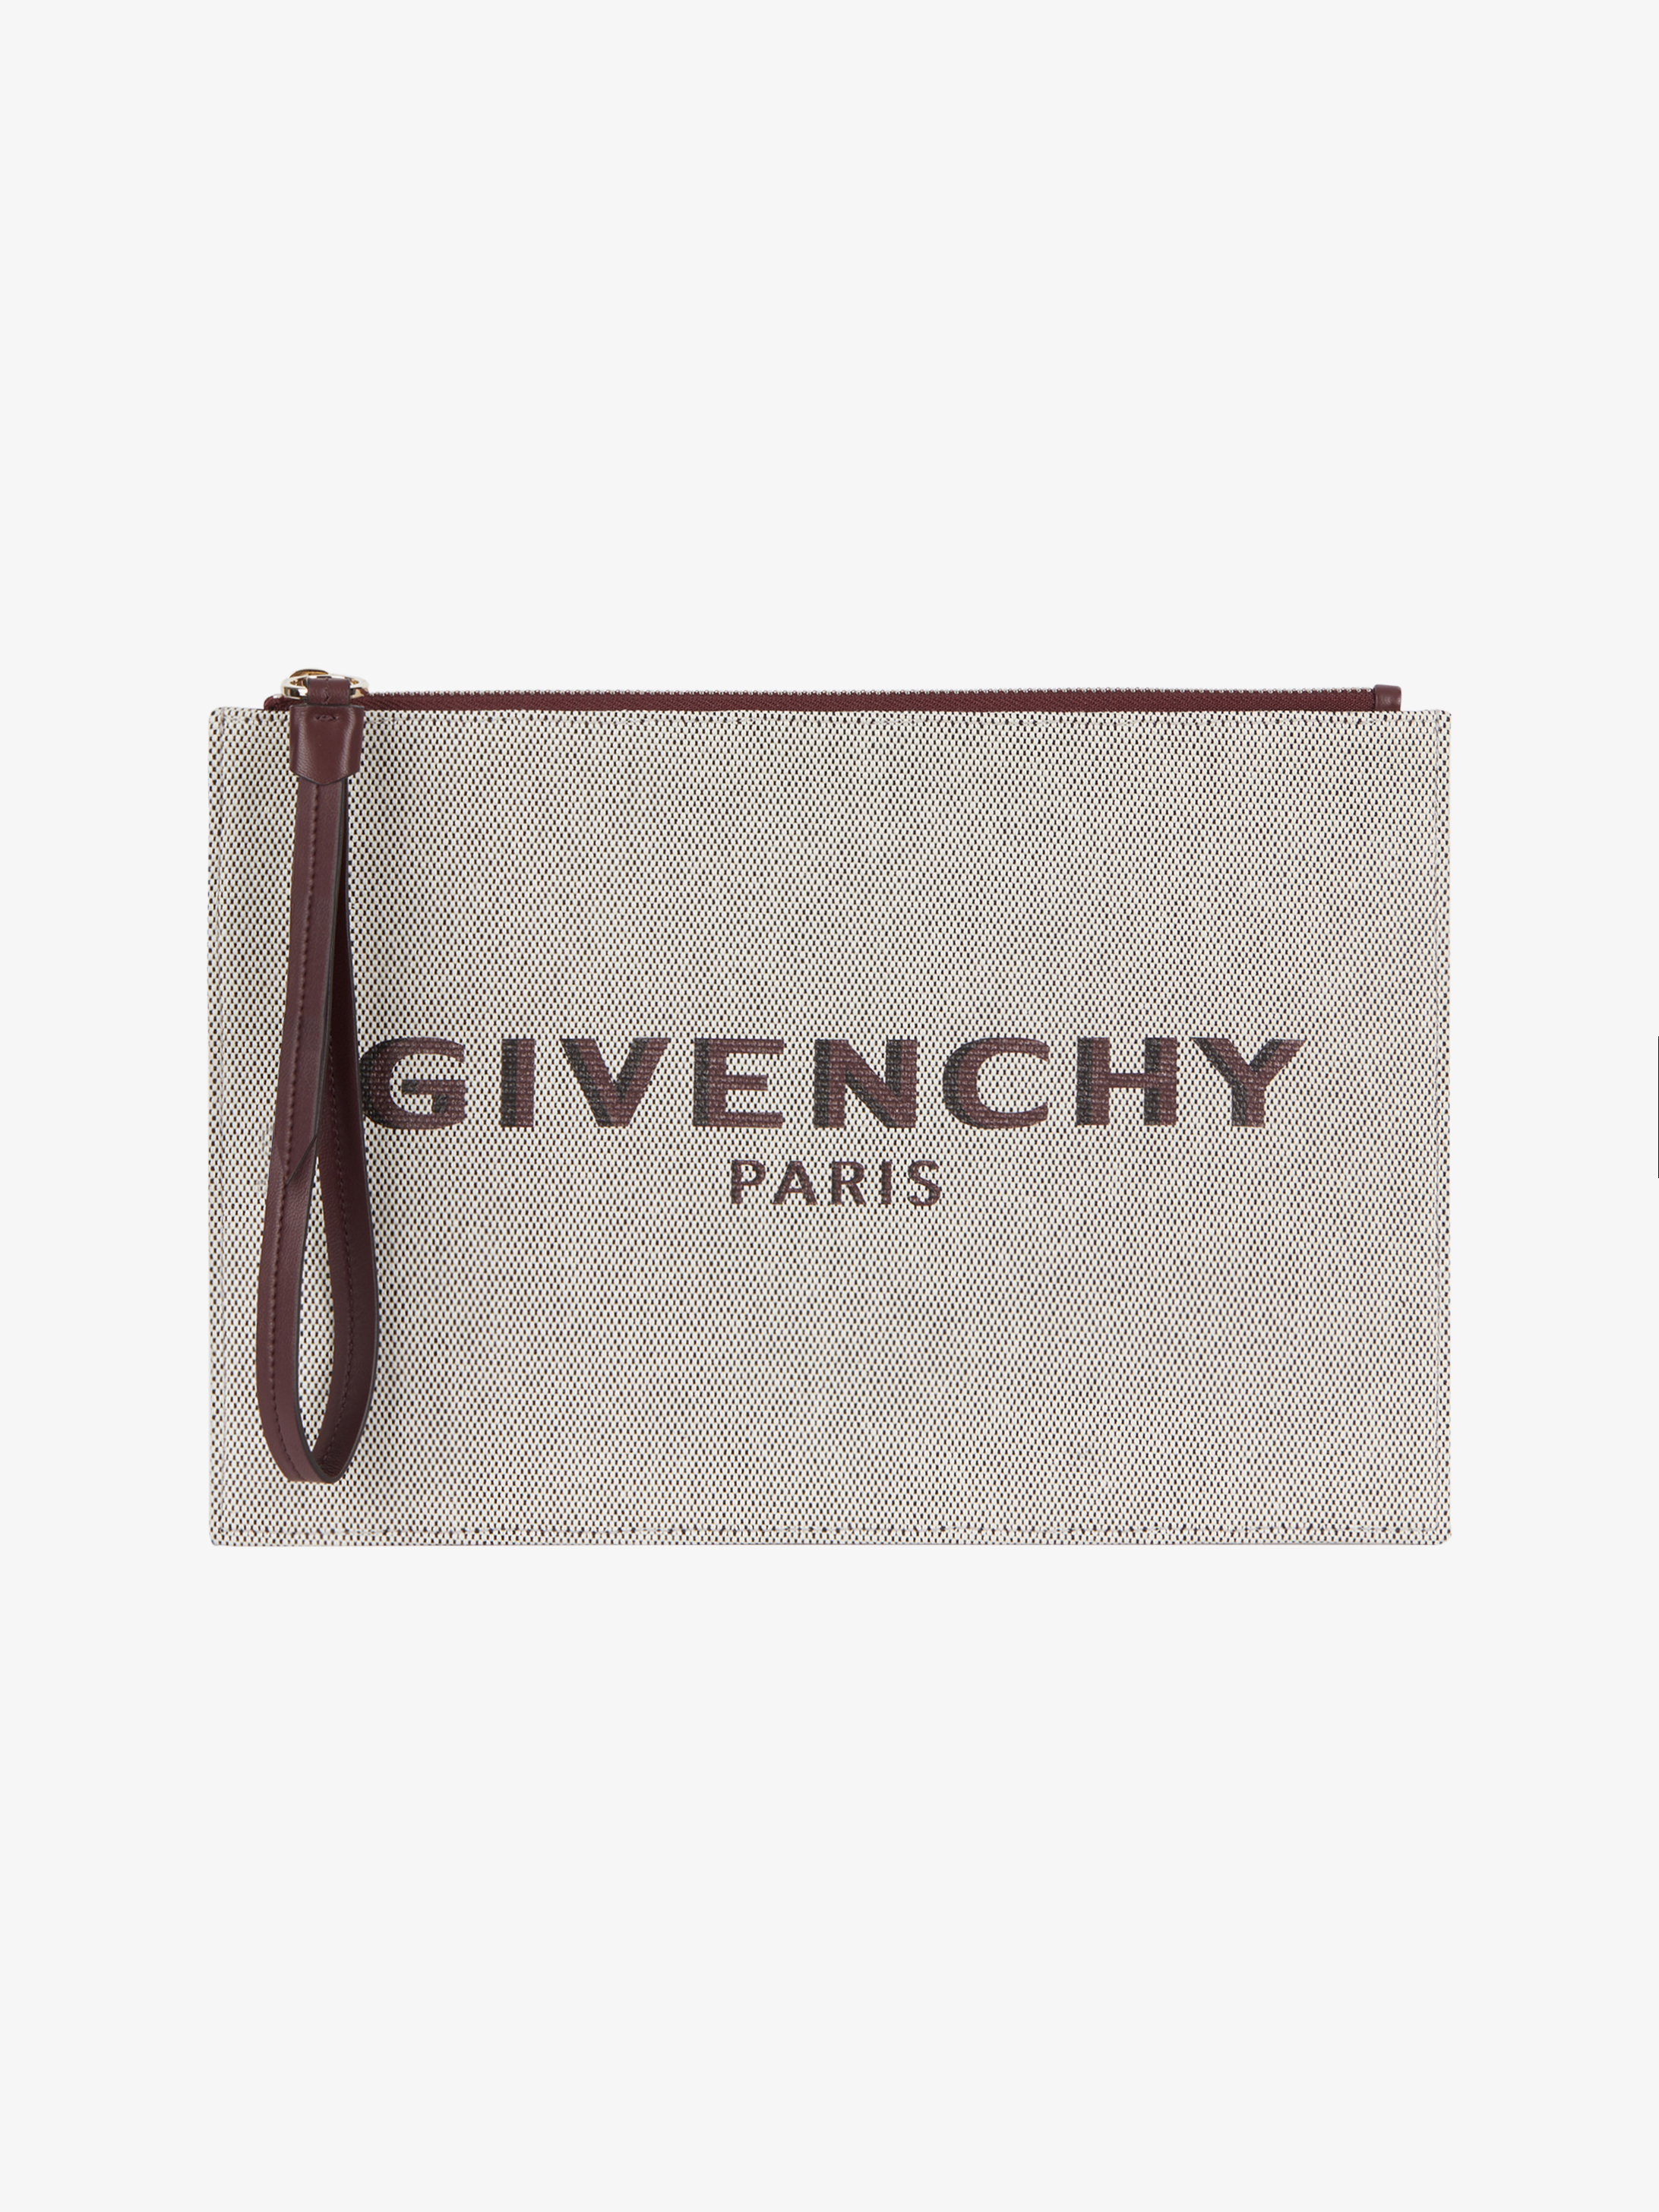 Medium GIVENCHY PARIS pouch in canvas